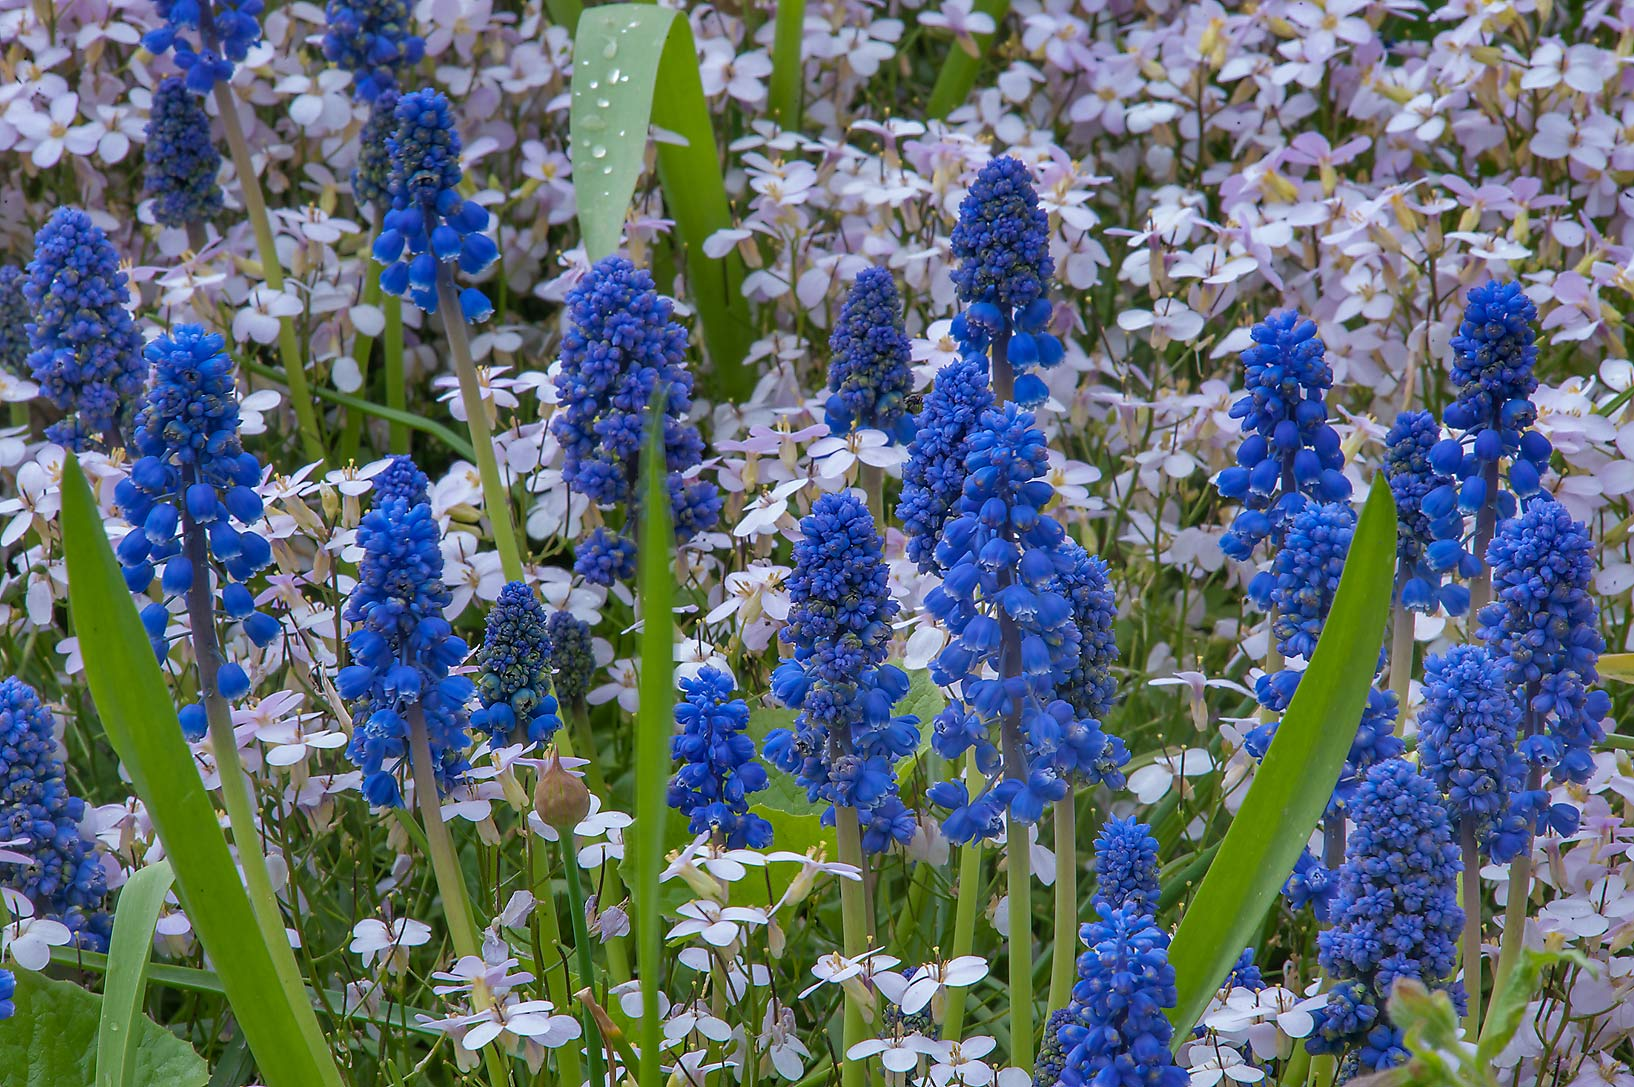 Blue flowers of grape hyacinth (Muscari) in...Institute. St.Petersburg, Russia